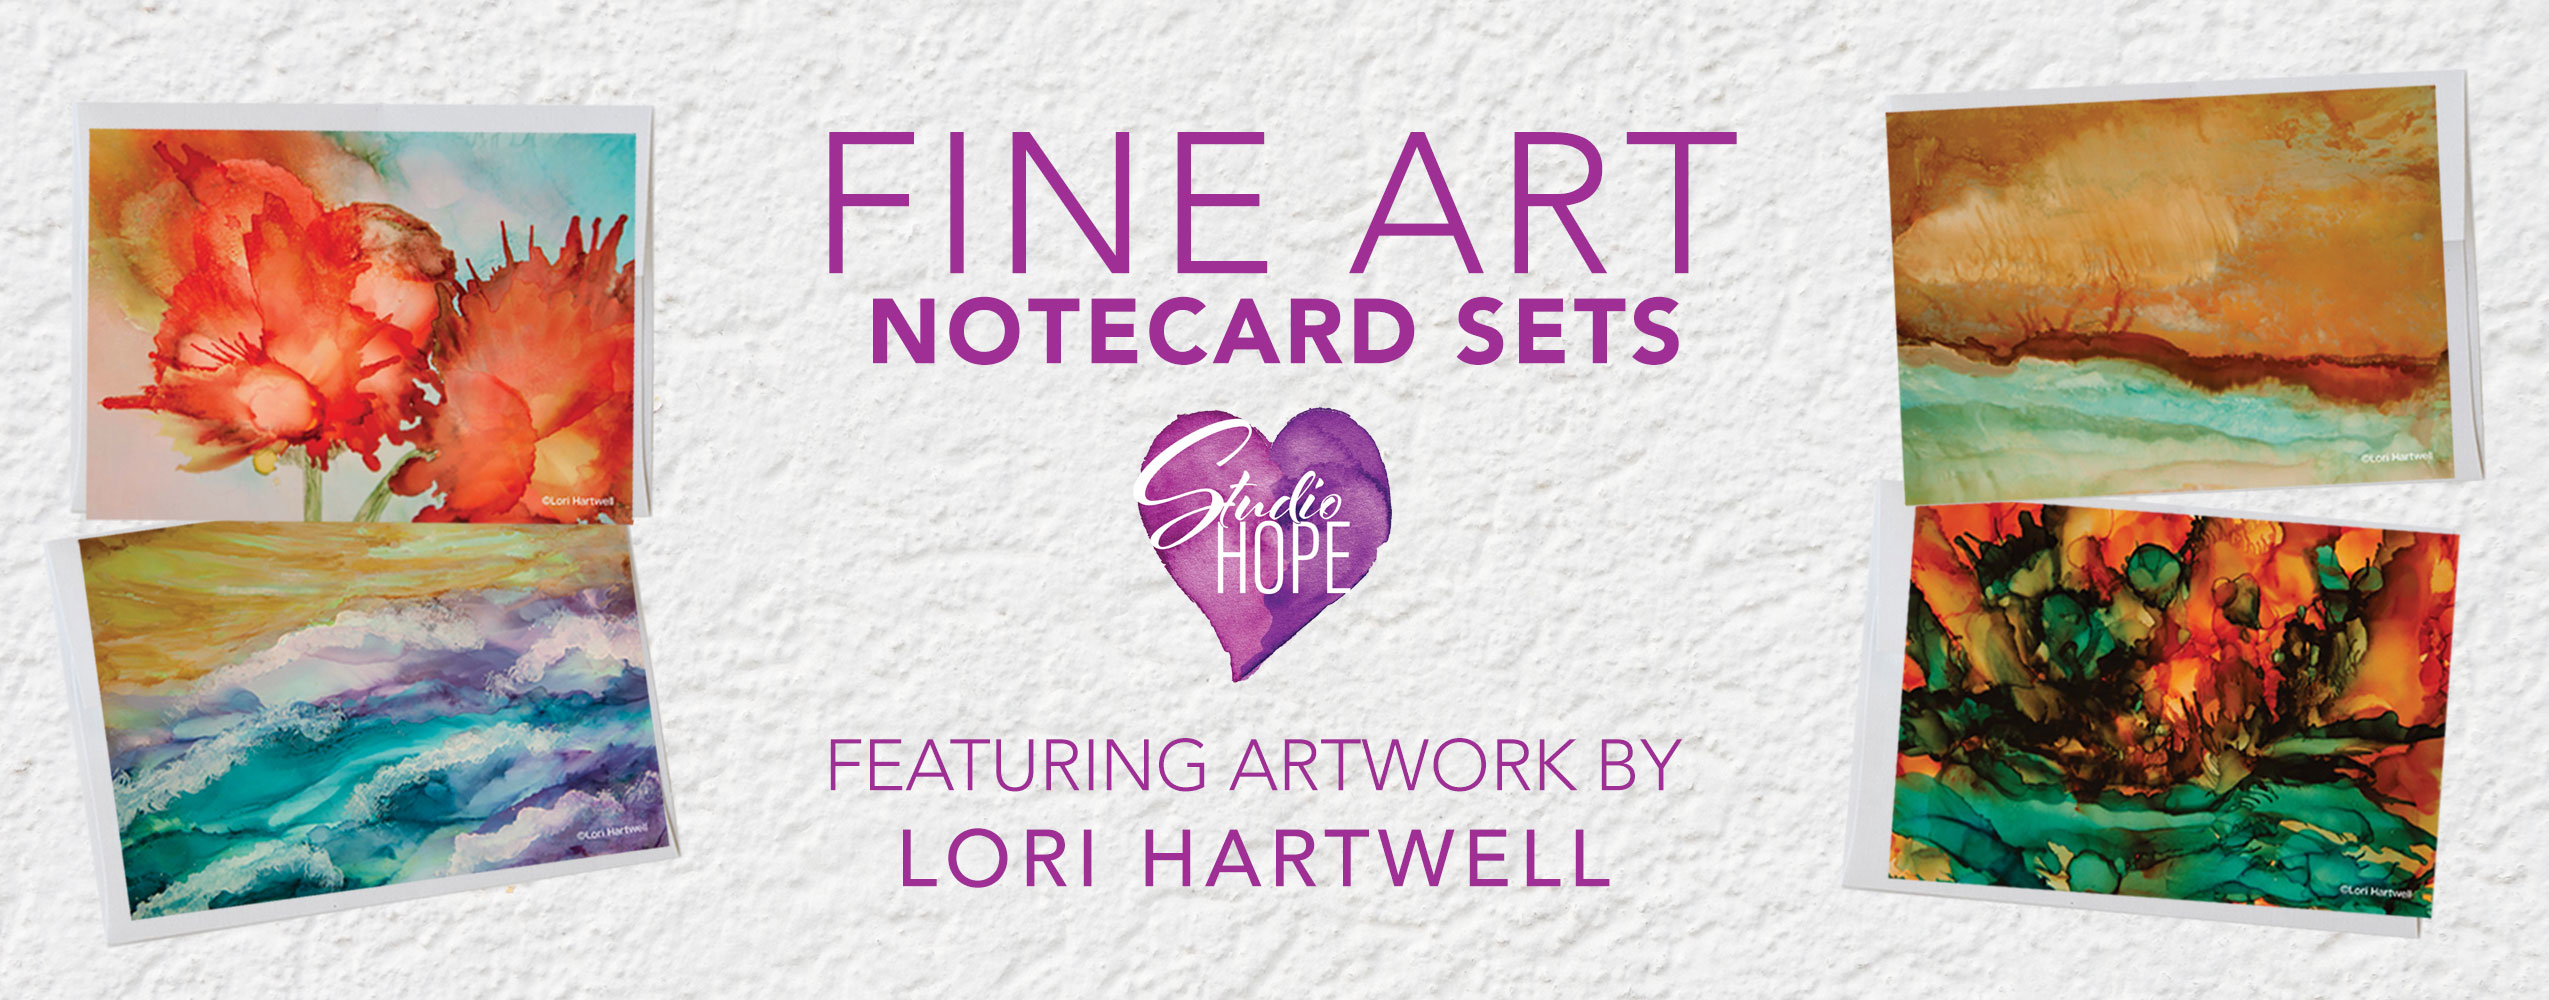 Fine art note cards - Lori Hartwell